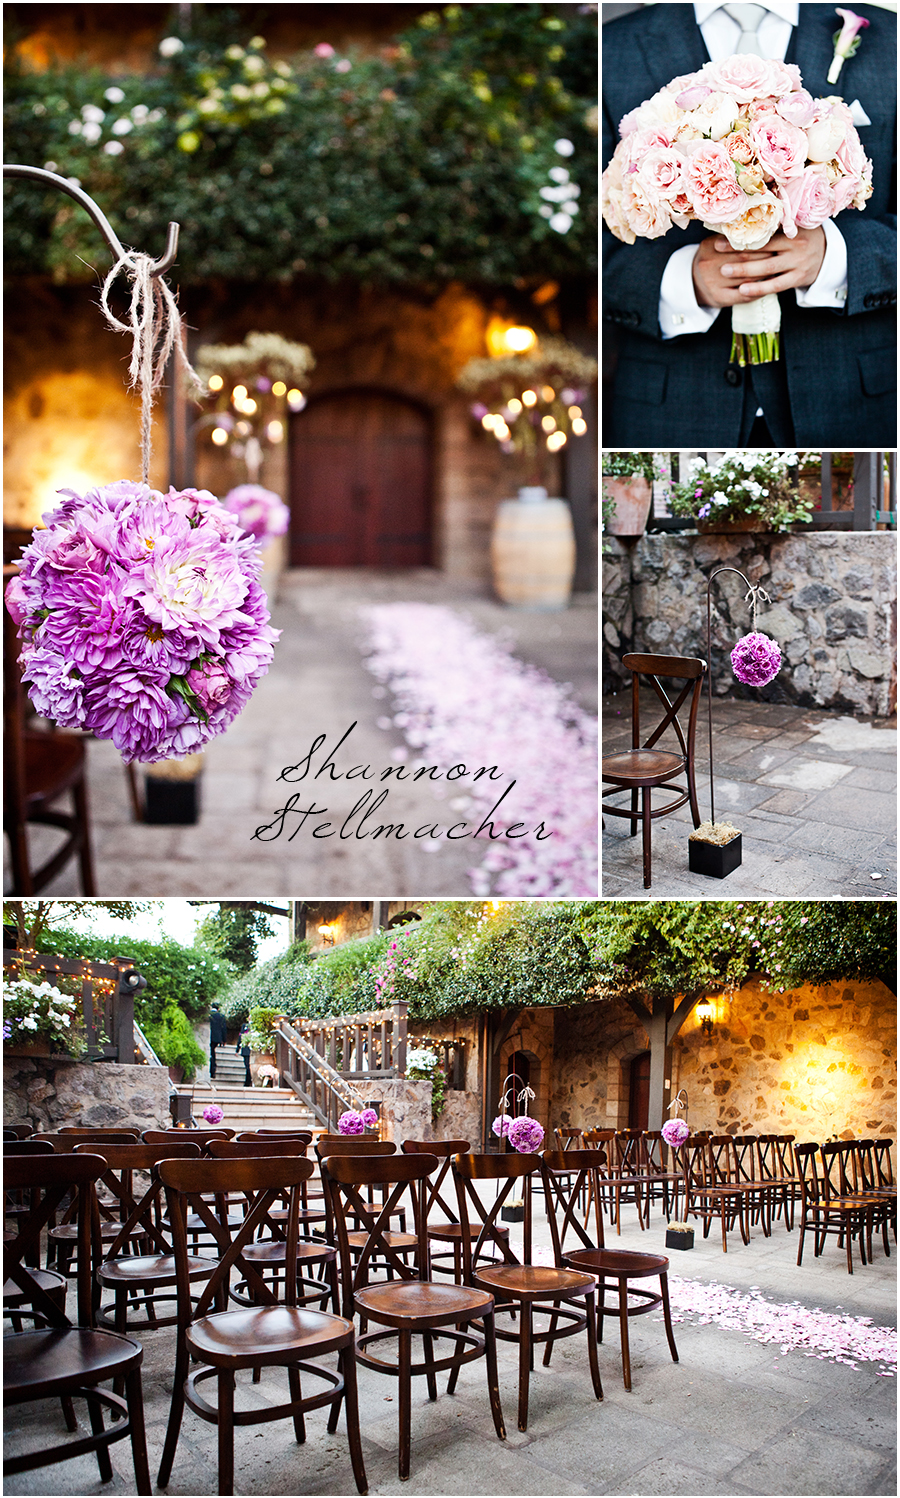 v sattui courtyard wedding.jpg